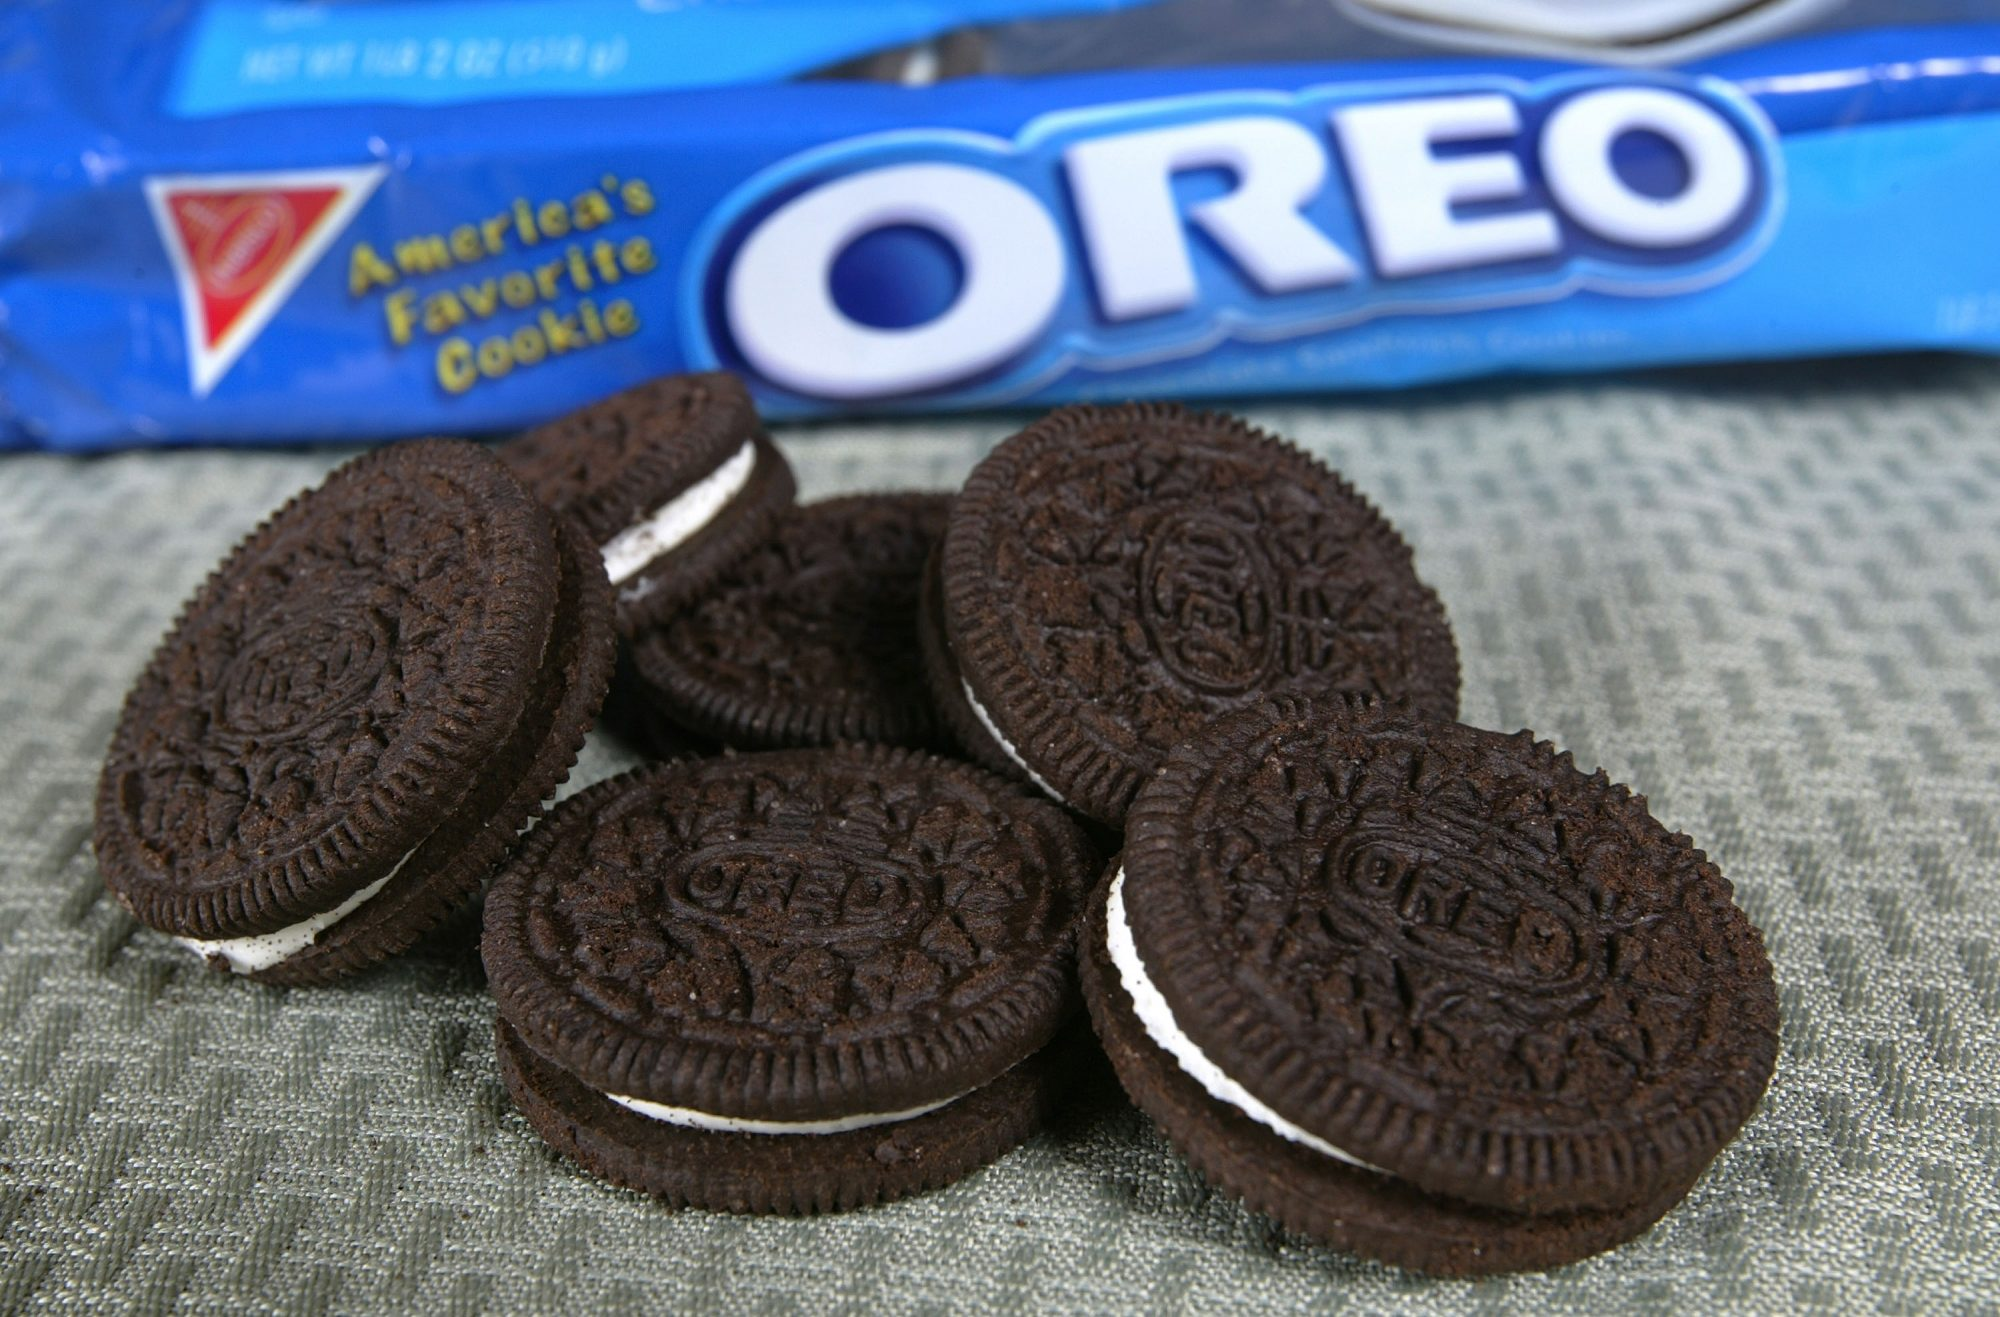 March 6 is National Oreo Day.